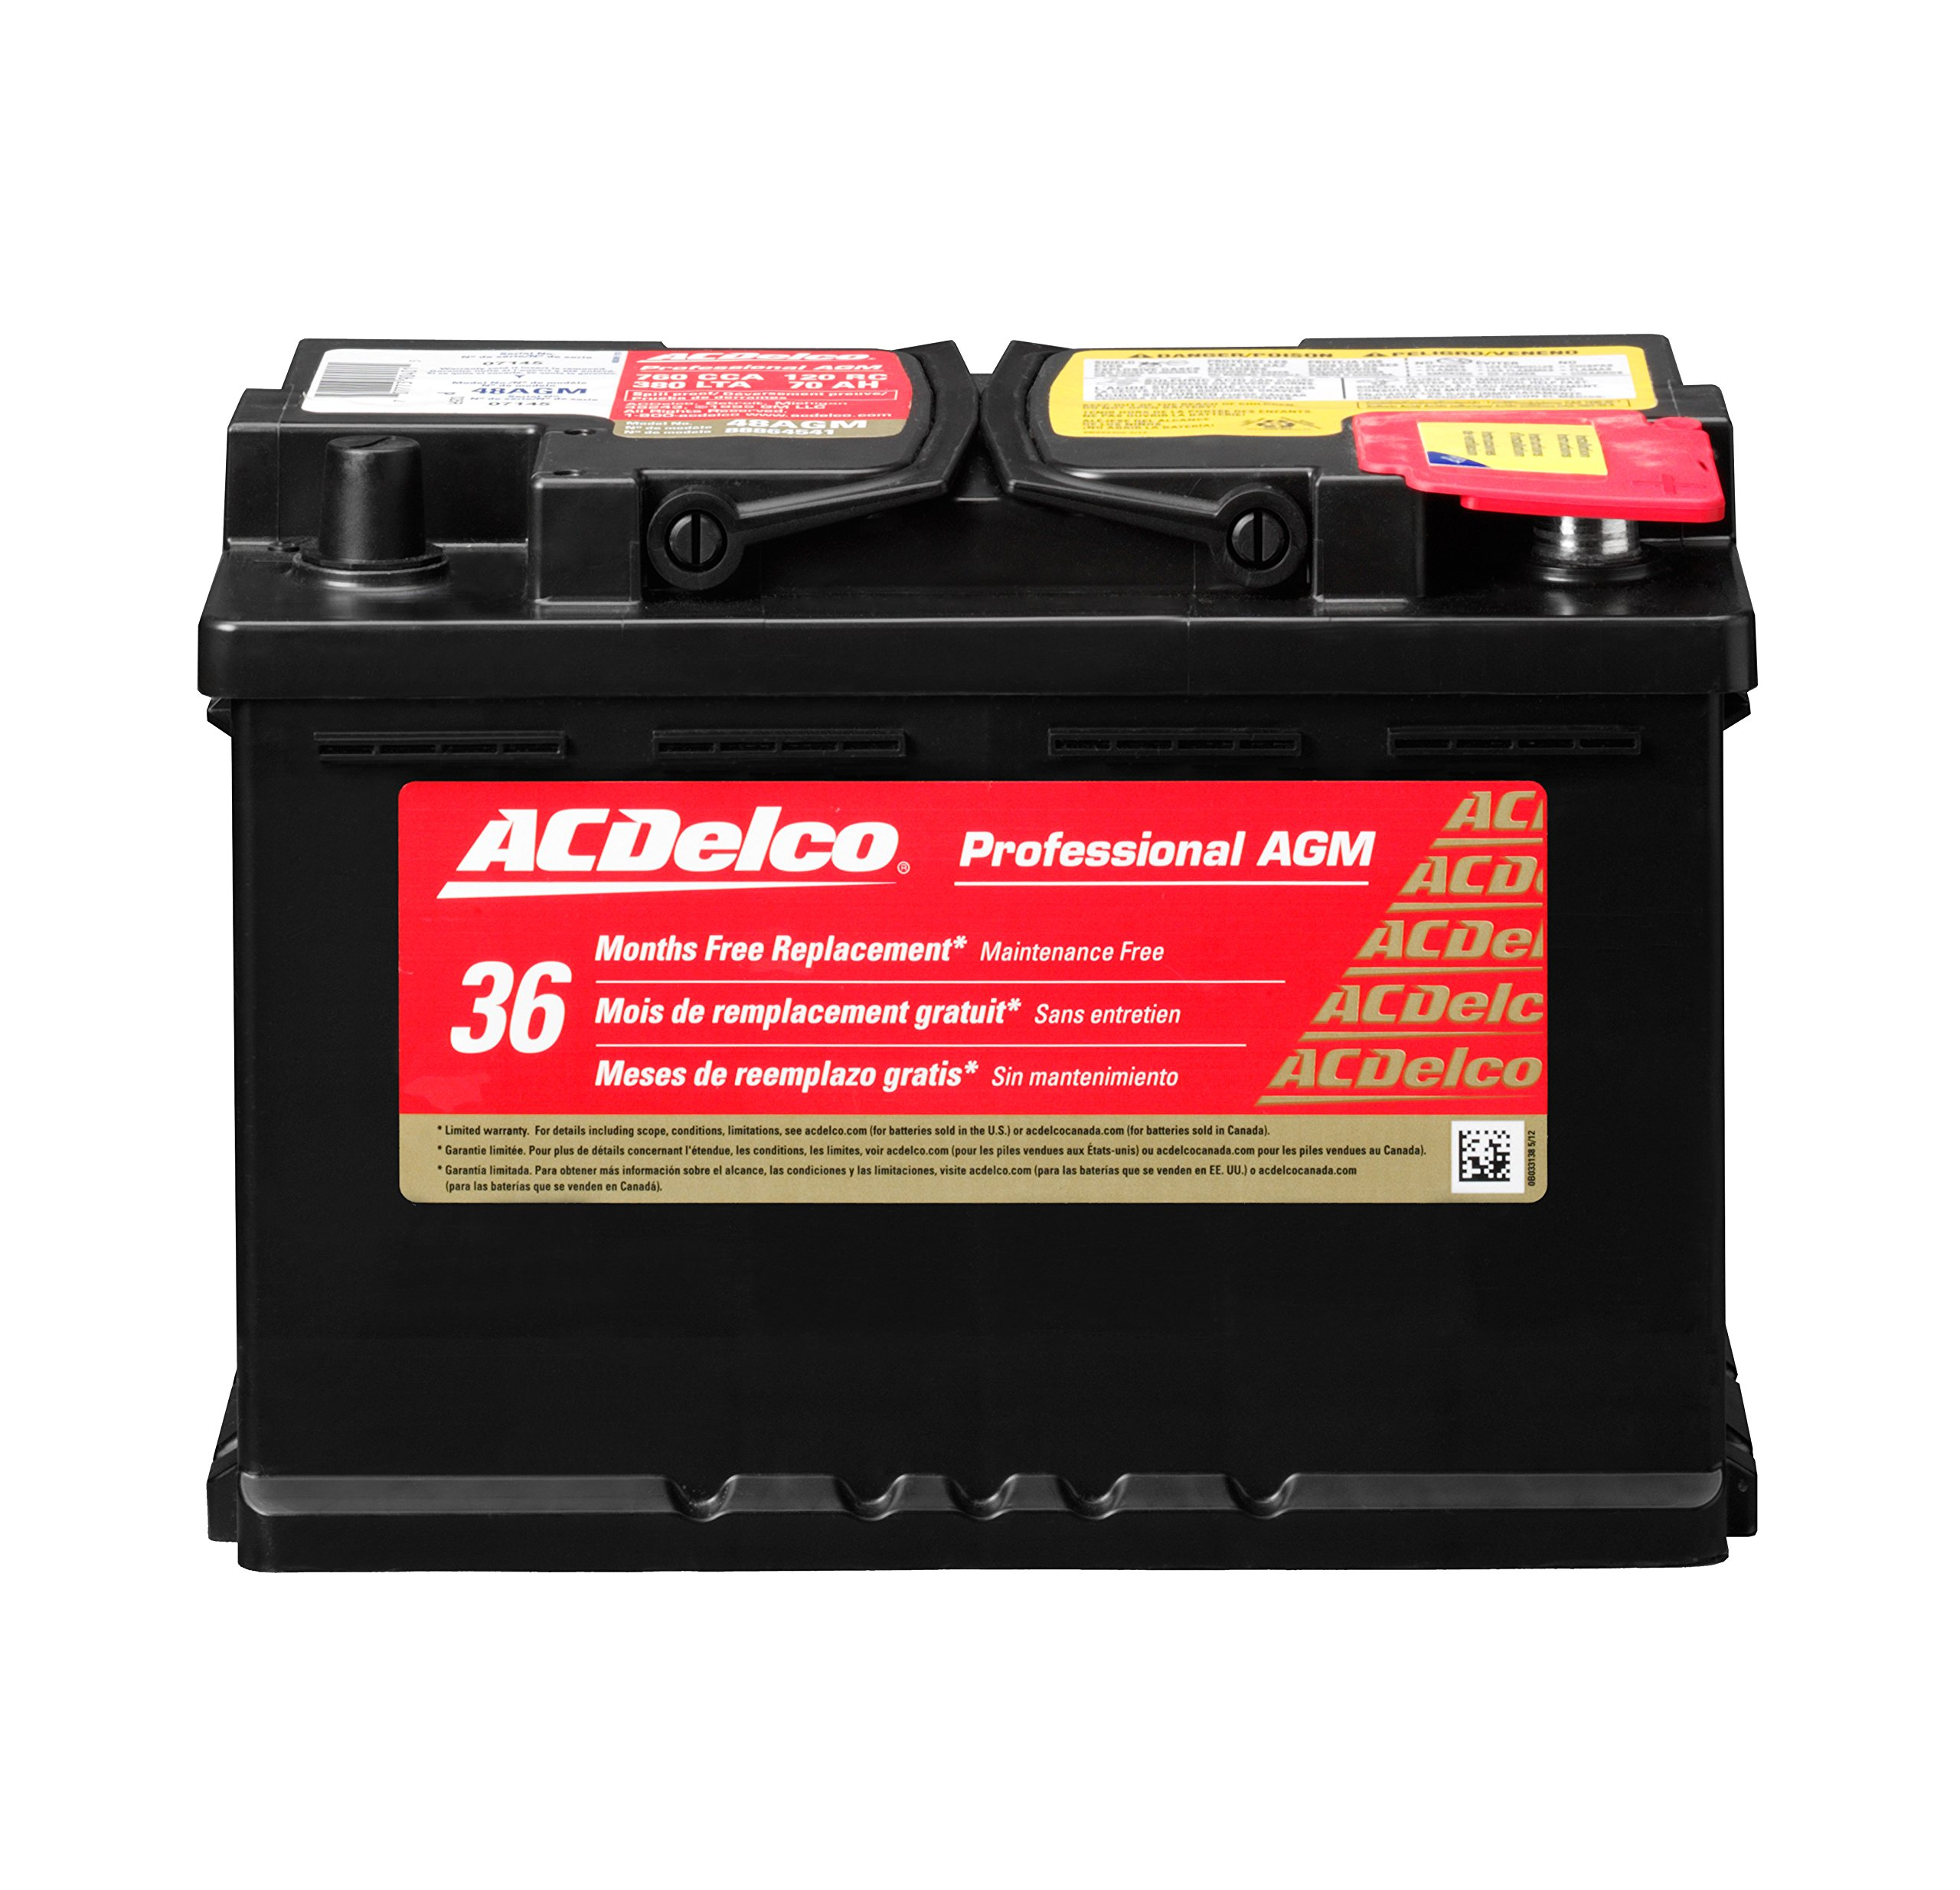 ACDelco 48AGM Professional AGM Automotive BCI Group 48 Battery by ACDelco